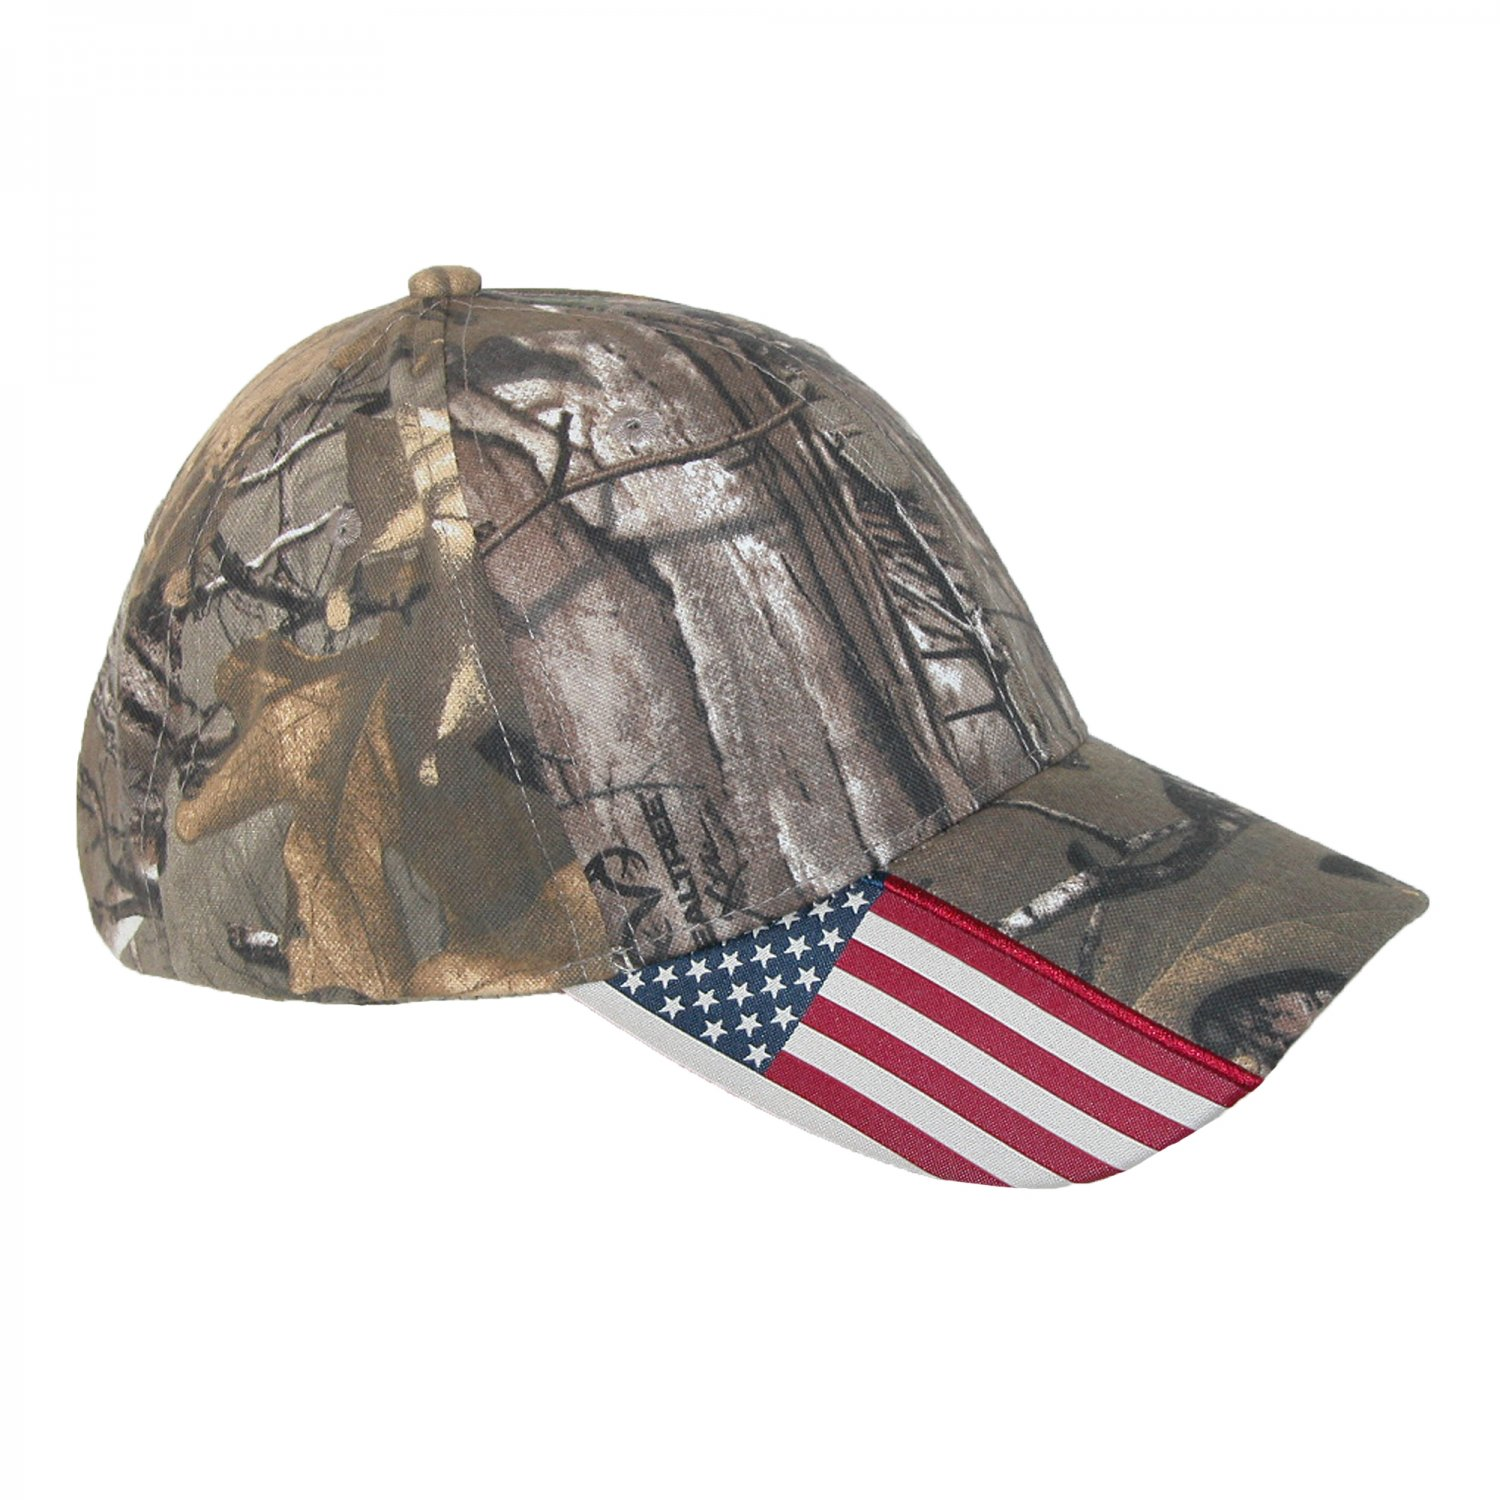 Real Tree Digital Camo Tactical Operator Contractor Military Patch Cap Hat